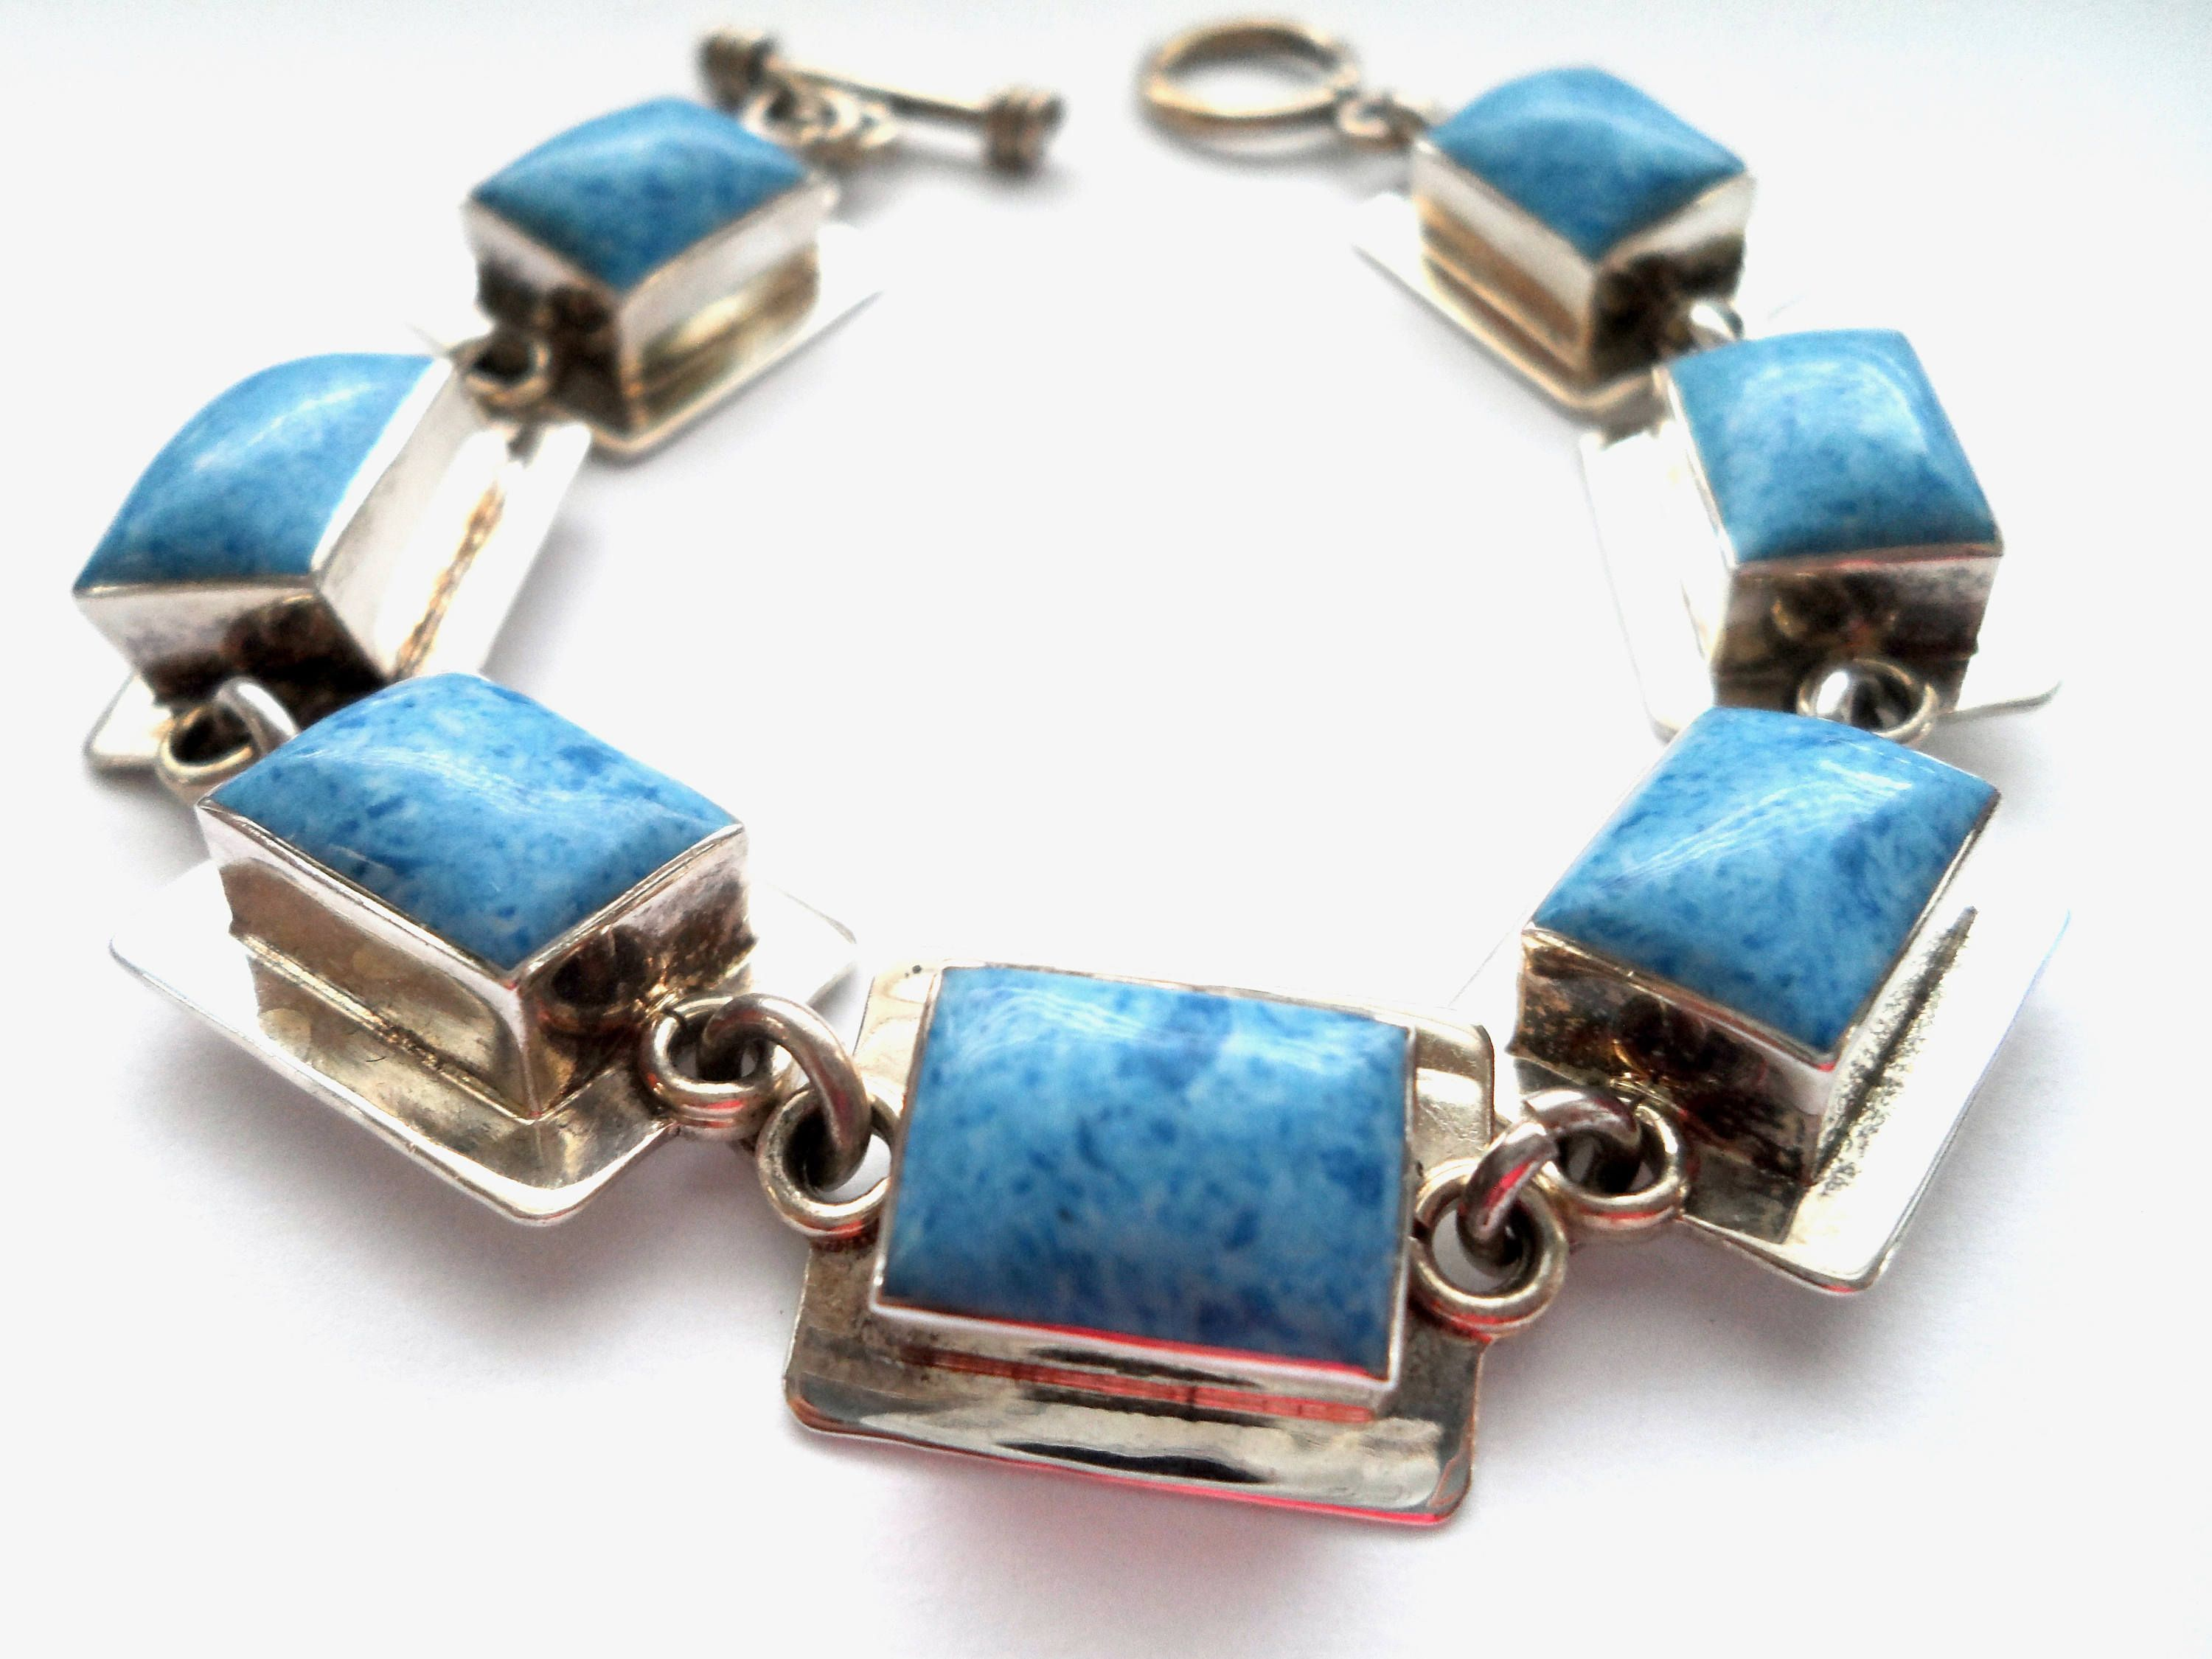 products blue stone image the art of stormie day bracelet end